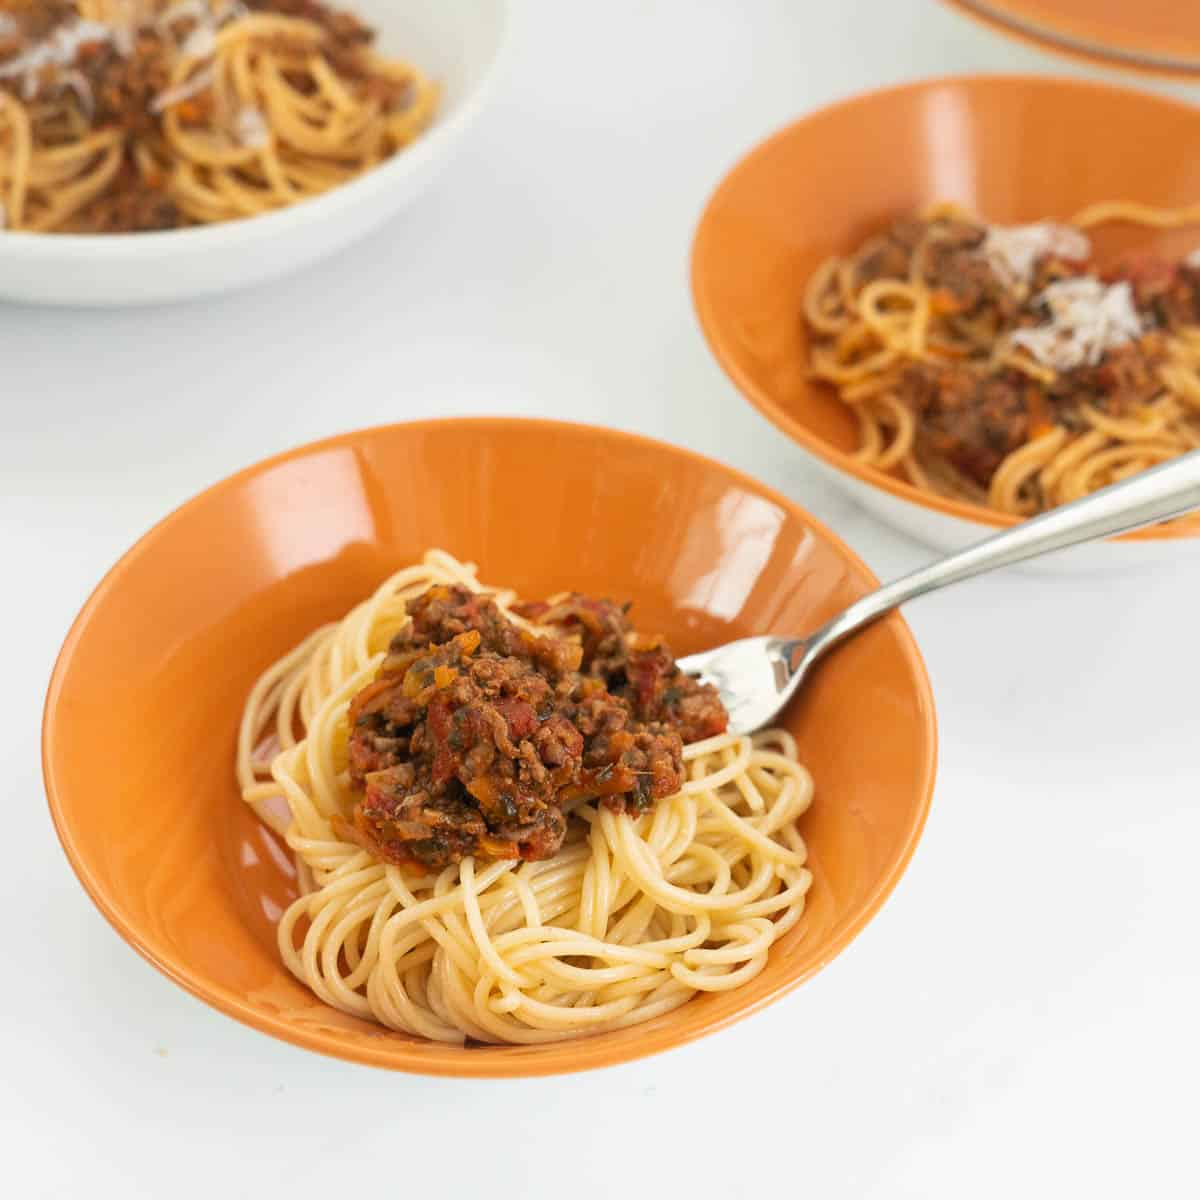 orange bowl filled with spaghetti and bolognese sauce